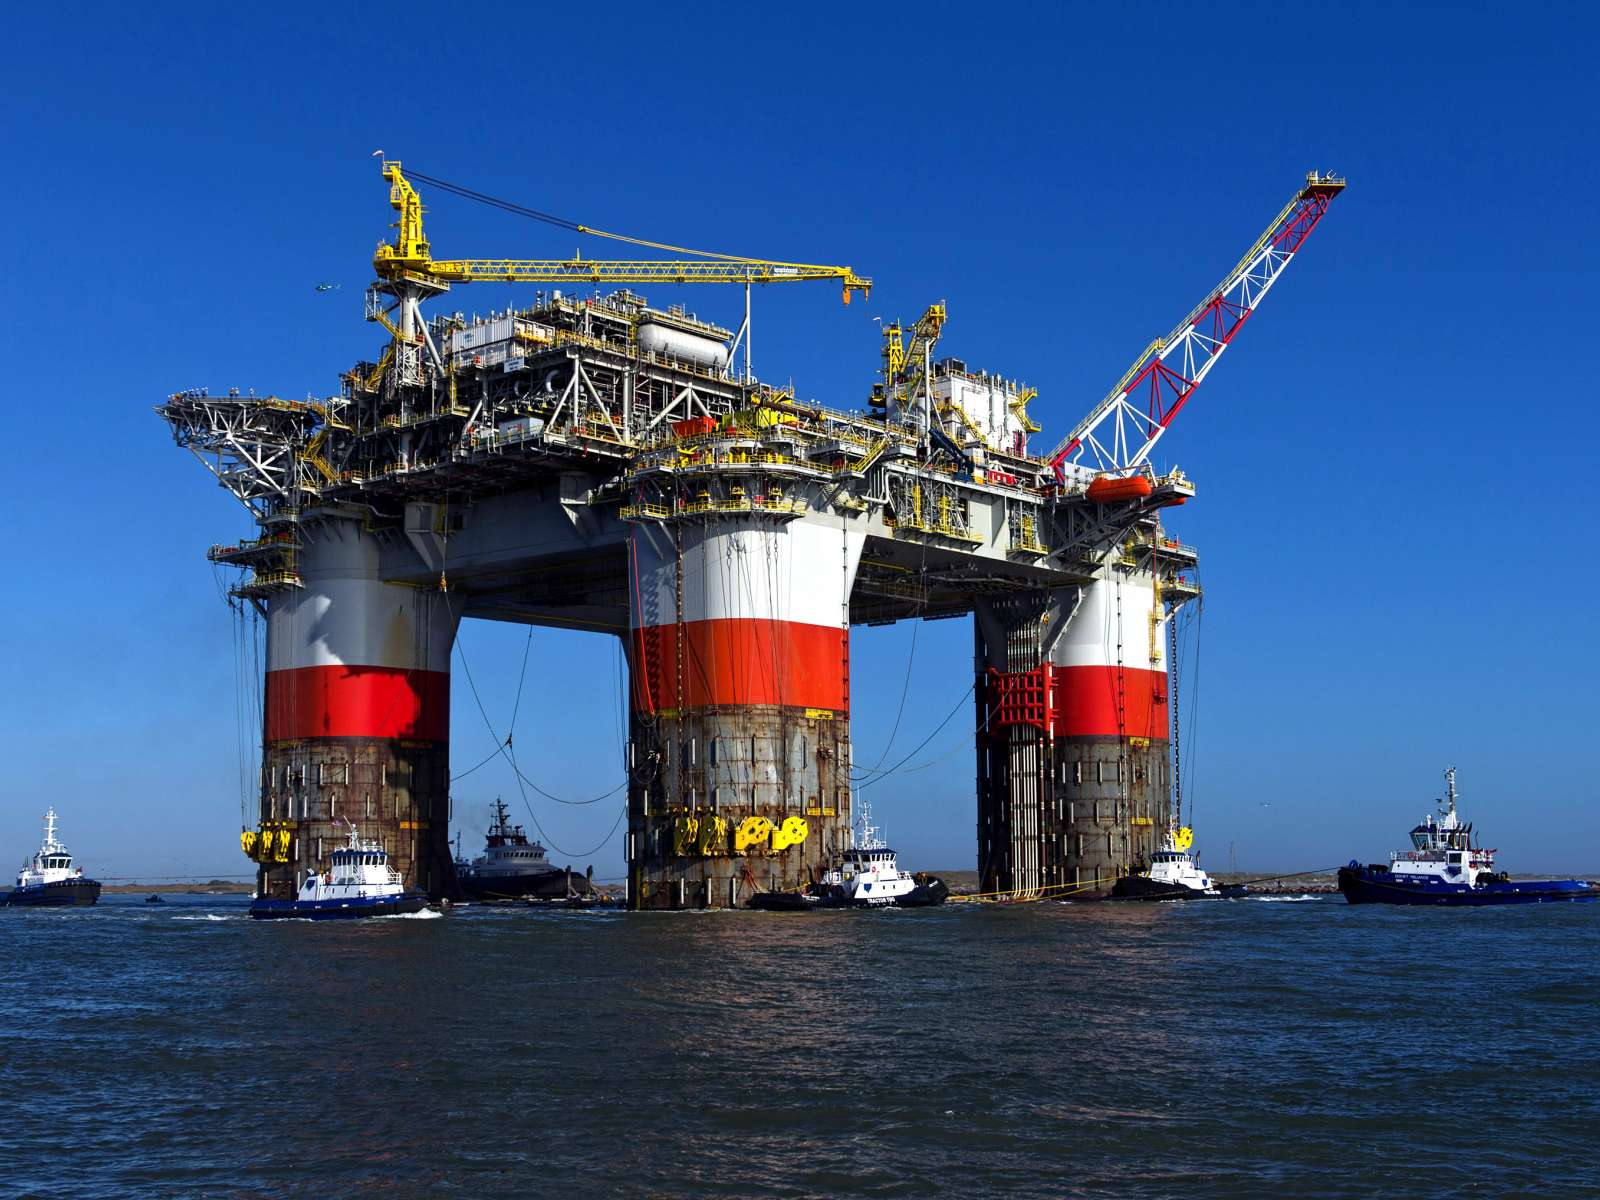 nCentric provides Heerema platform with video hardware